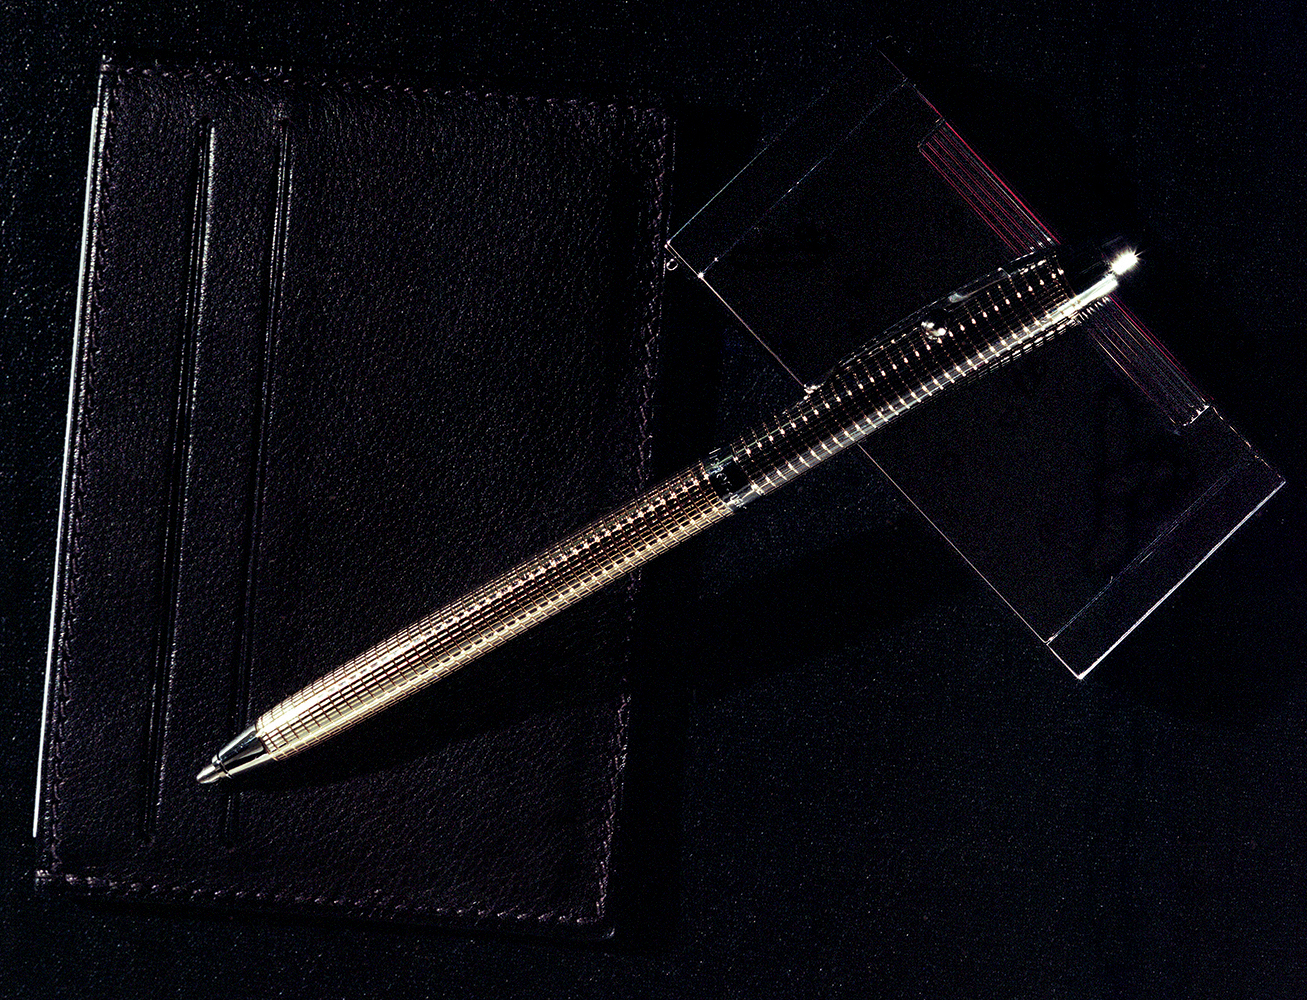 Leather cardholder Hermès, Silver pen Fischer Space Pens, Silver lighter Prometheus